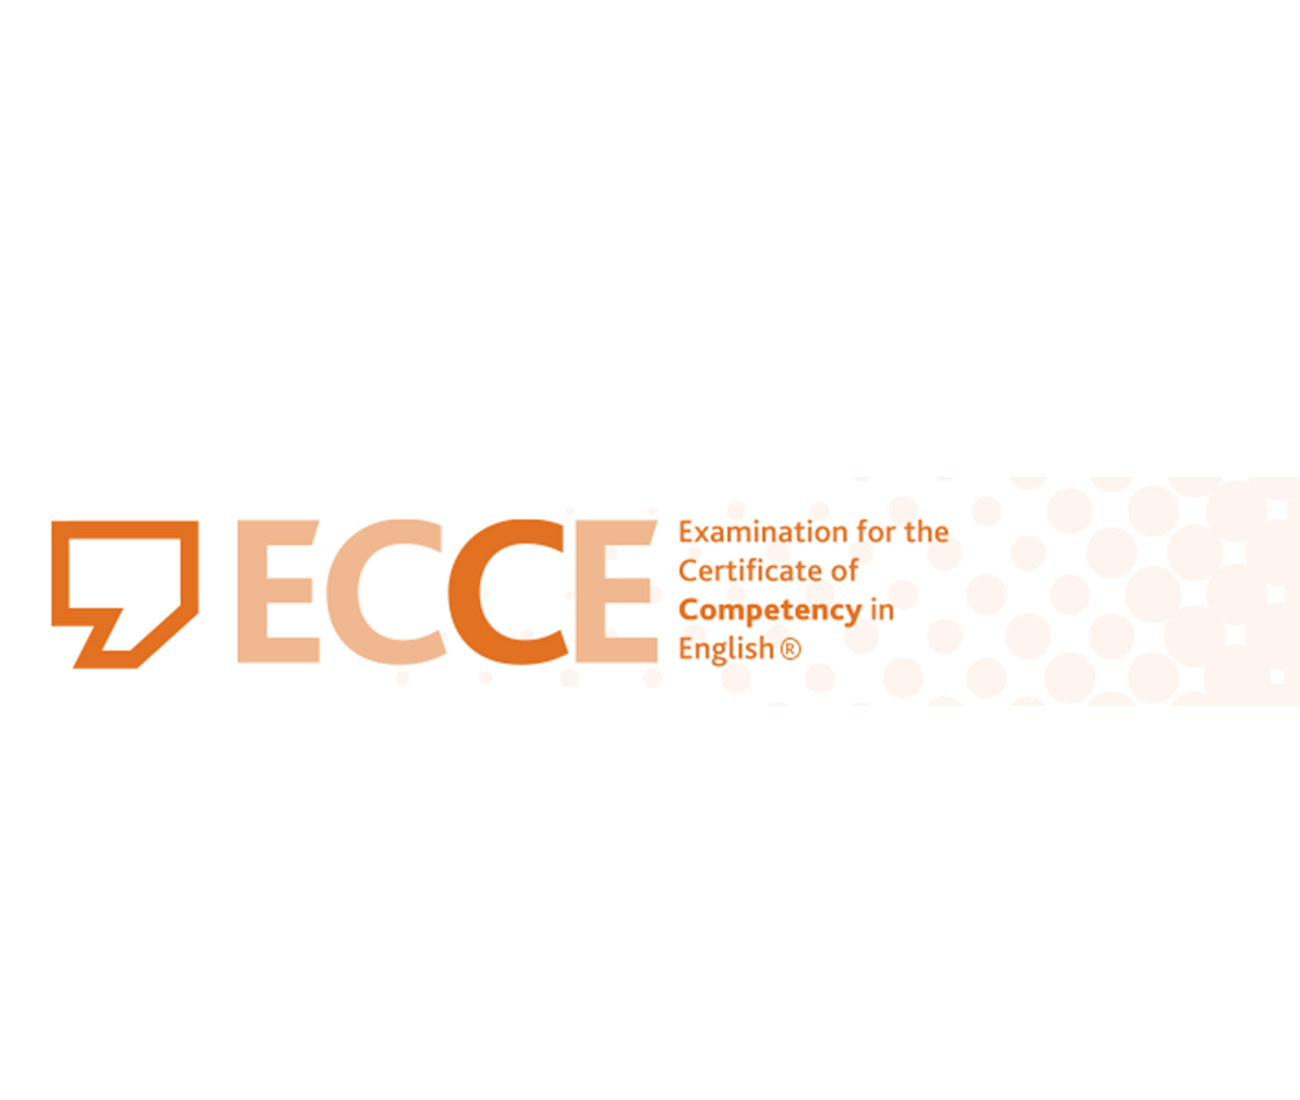 Examination for the Certificate of Competency in English (ECCE)